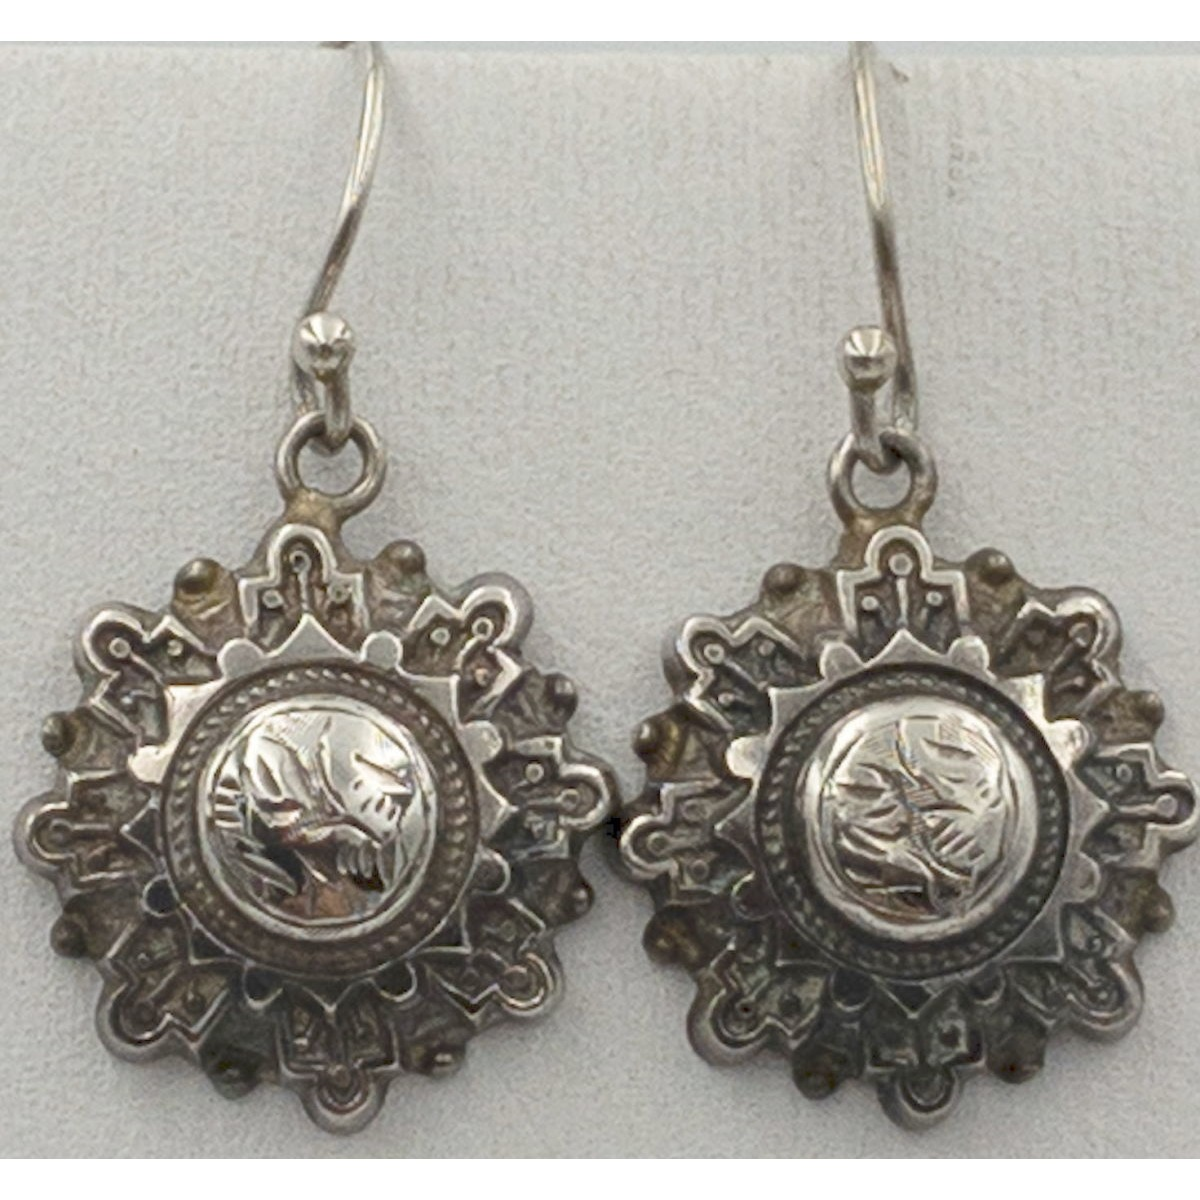 Awesome Highly Detailed, Domed Star Antique English Silver Earrings